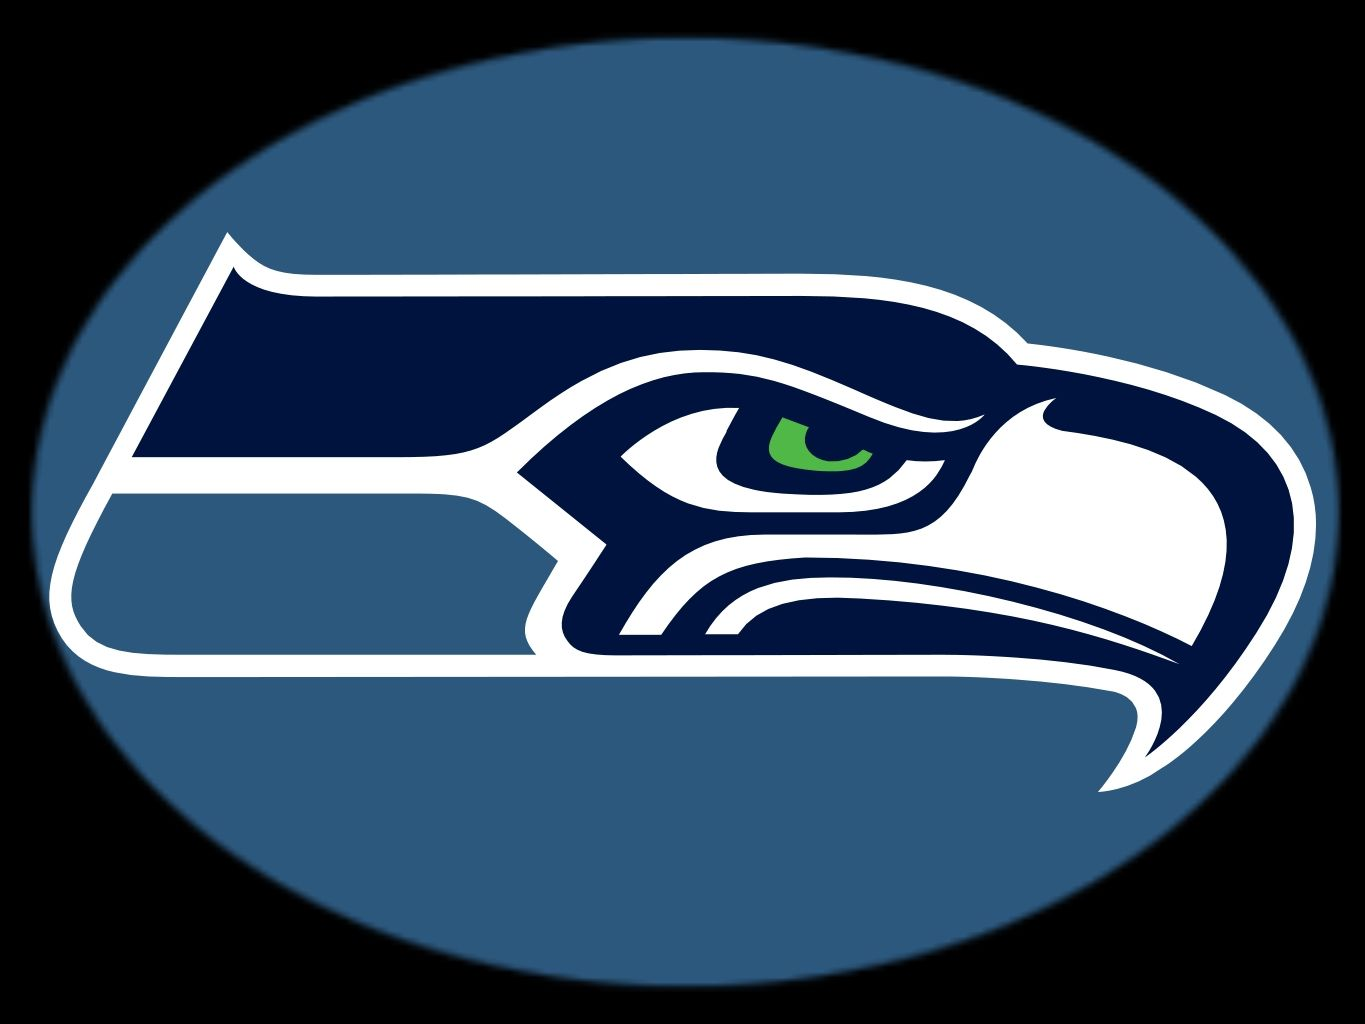 1000+ images about Seattle Seahawks on Pinterest | Seahawks ...